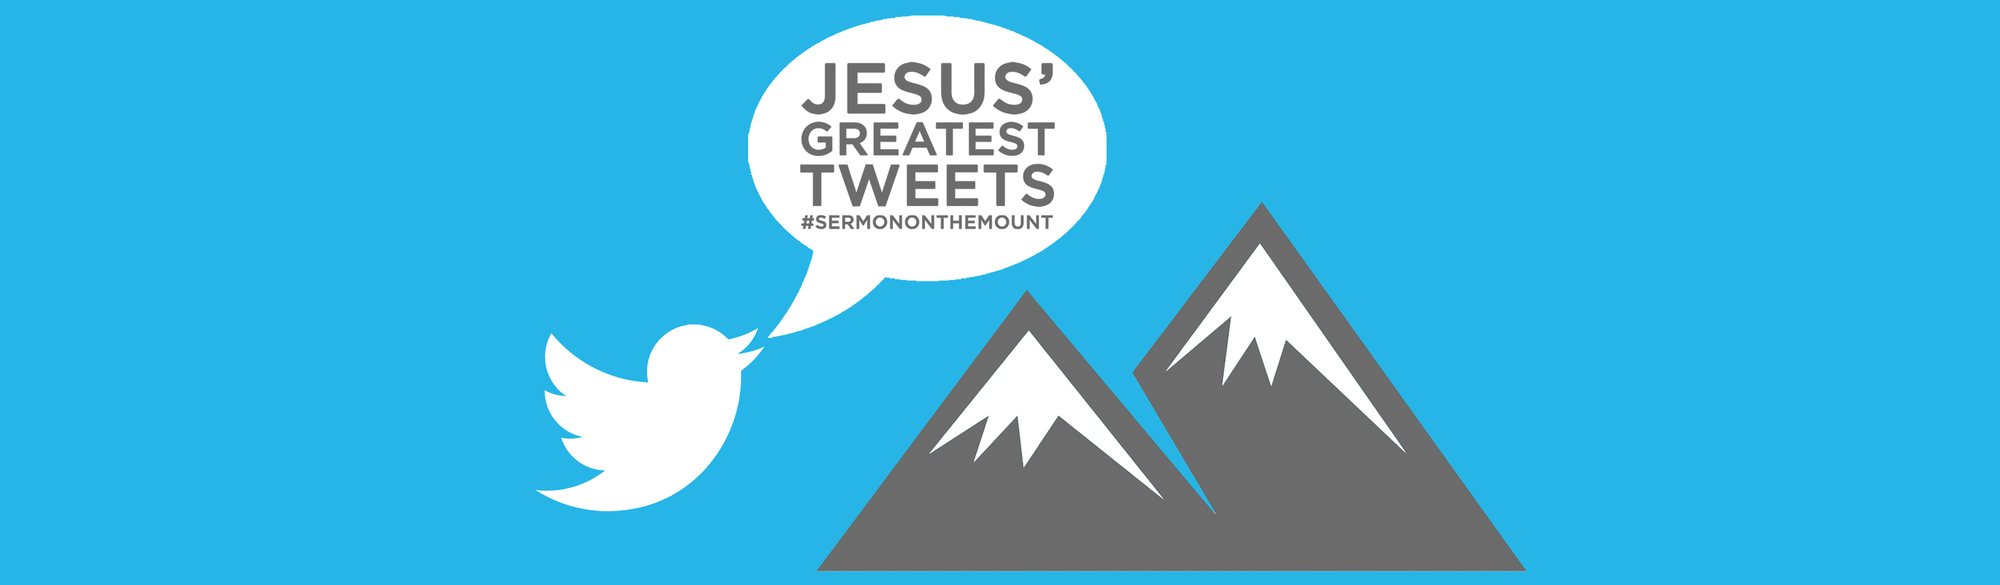 JesusGreatestTweetsBanner